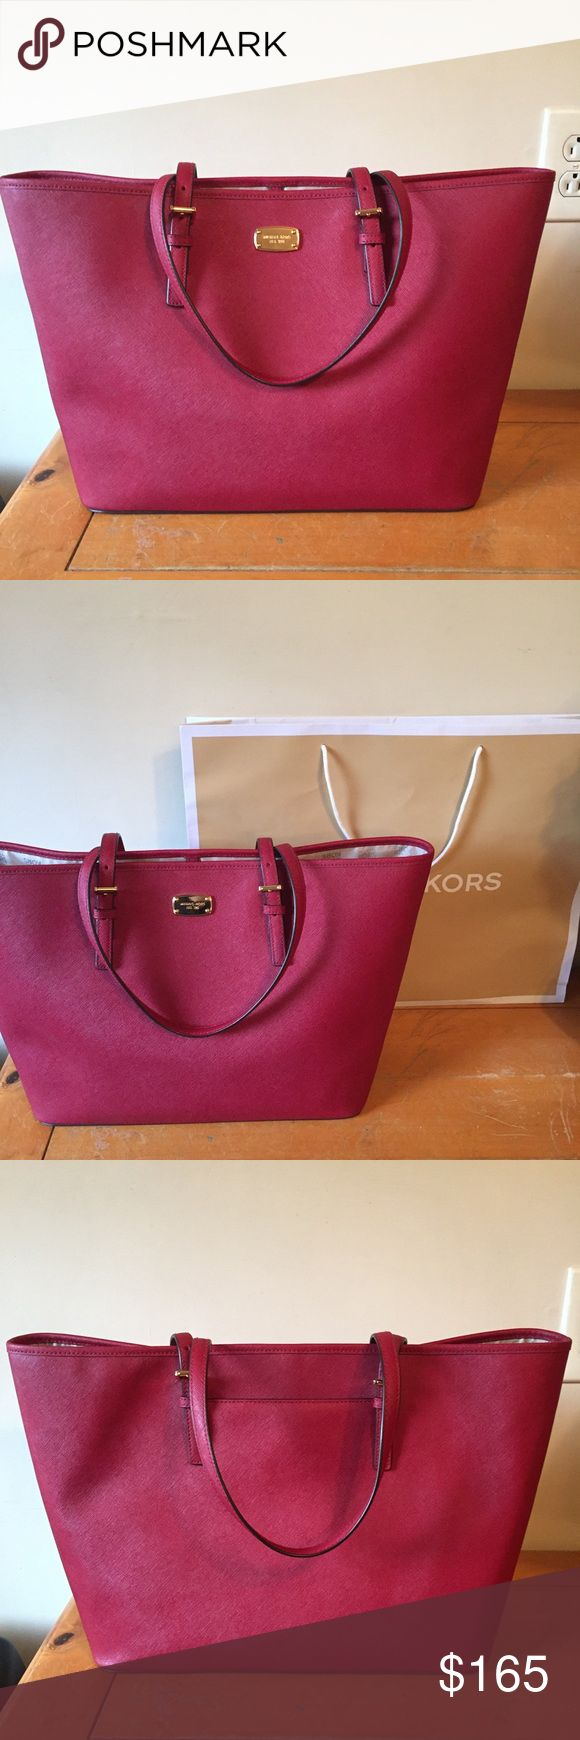 NWT Michael Kors Jet Set Tote Saffiano Leather (scratch resistant water resistant)  17 x 11.5 x 5 Snap Closure  Back Pocket  Color is Cherry  Will send with shopping bag  Please make offers using the offer button MICHAEL Michael Kors Bags Totes